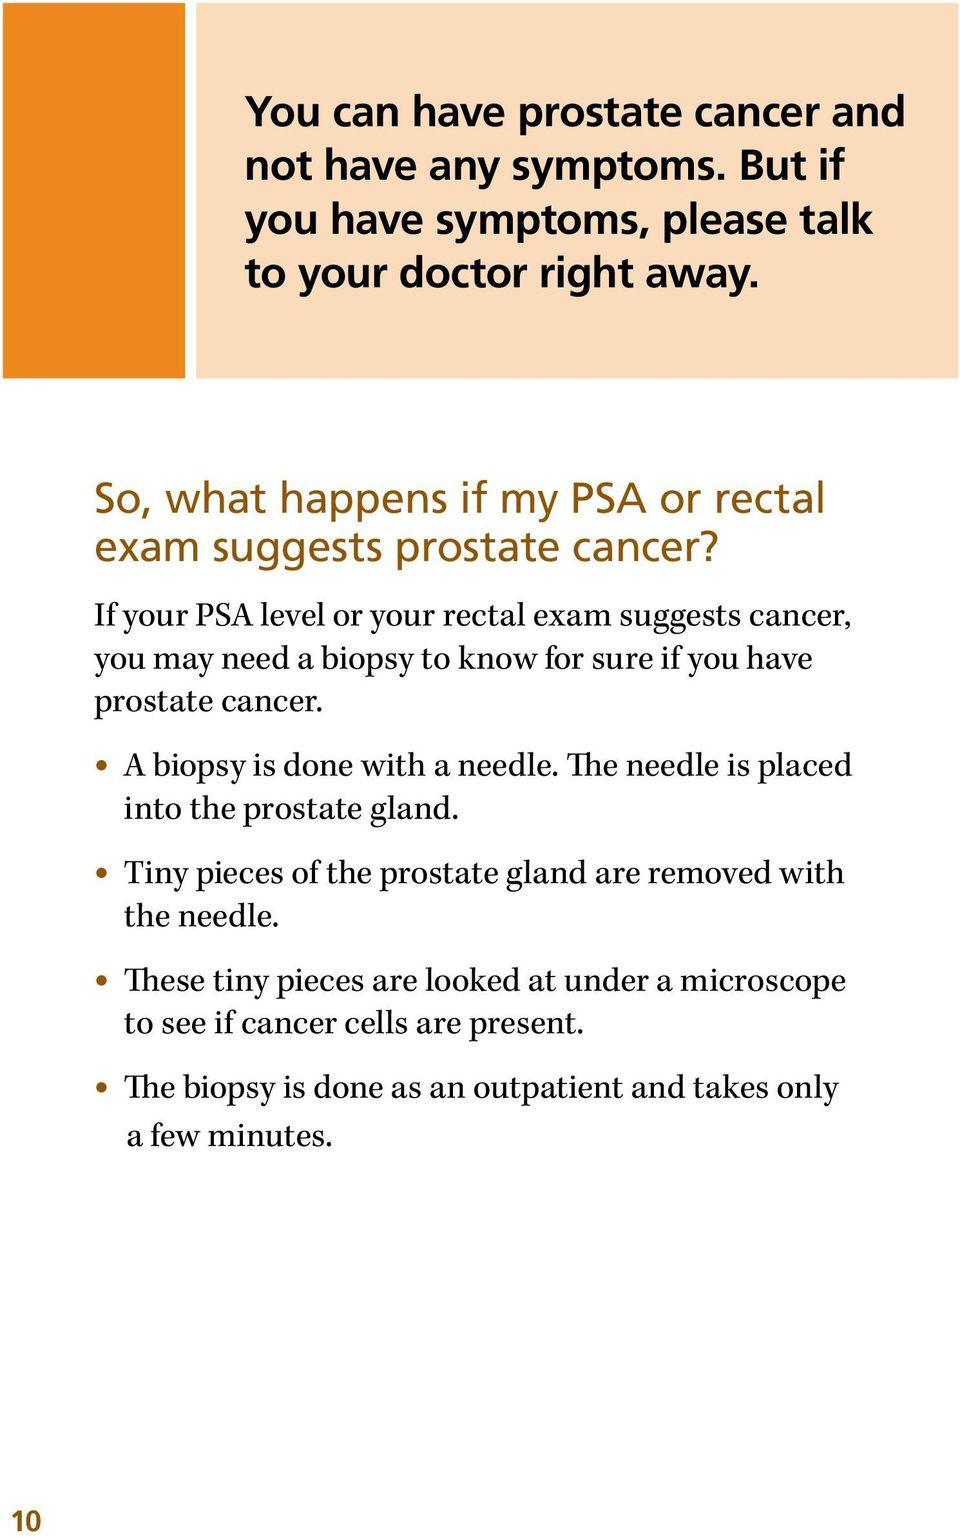 If your PSA level or your rectal exam suggests cancer, you may need a biopsy to know for sure if you have prostate cancer.